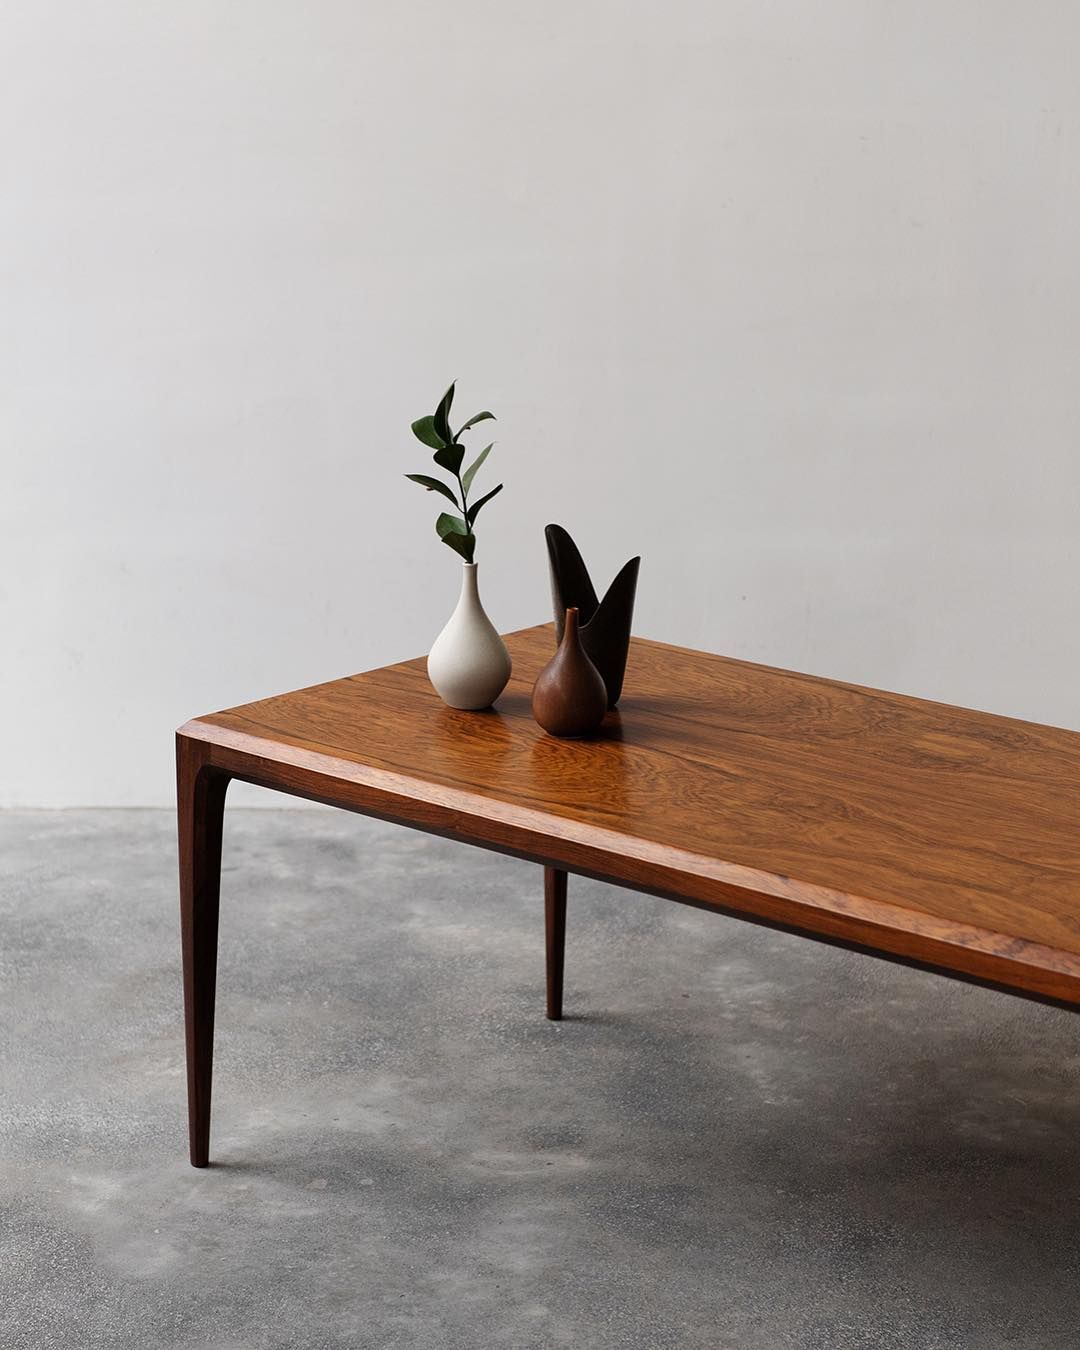 14 Luxury Cafe Vintage L Shaped Desk For Living Room References In The Event The Desk You Select H Danish Coffee Table Coffee Table Danish Design Coffee Table [ 1350 x 1080 Pixel ]